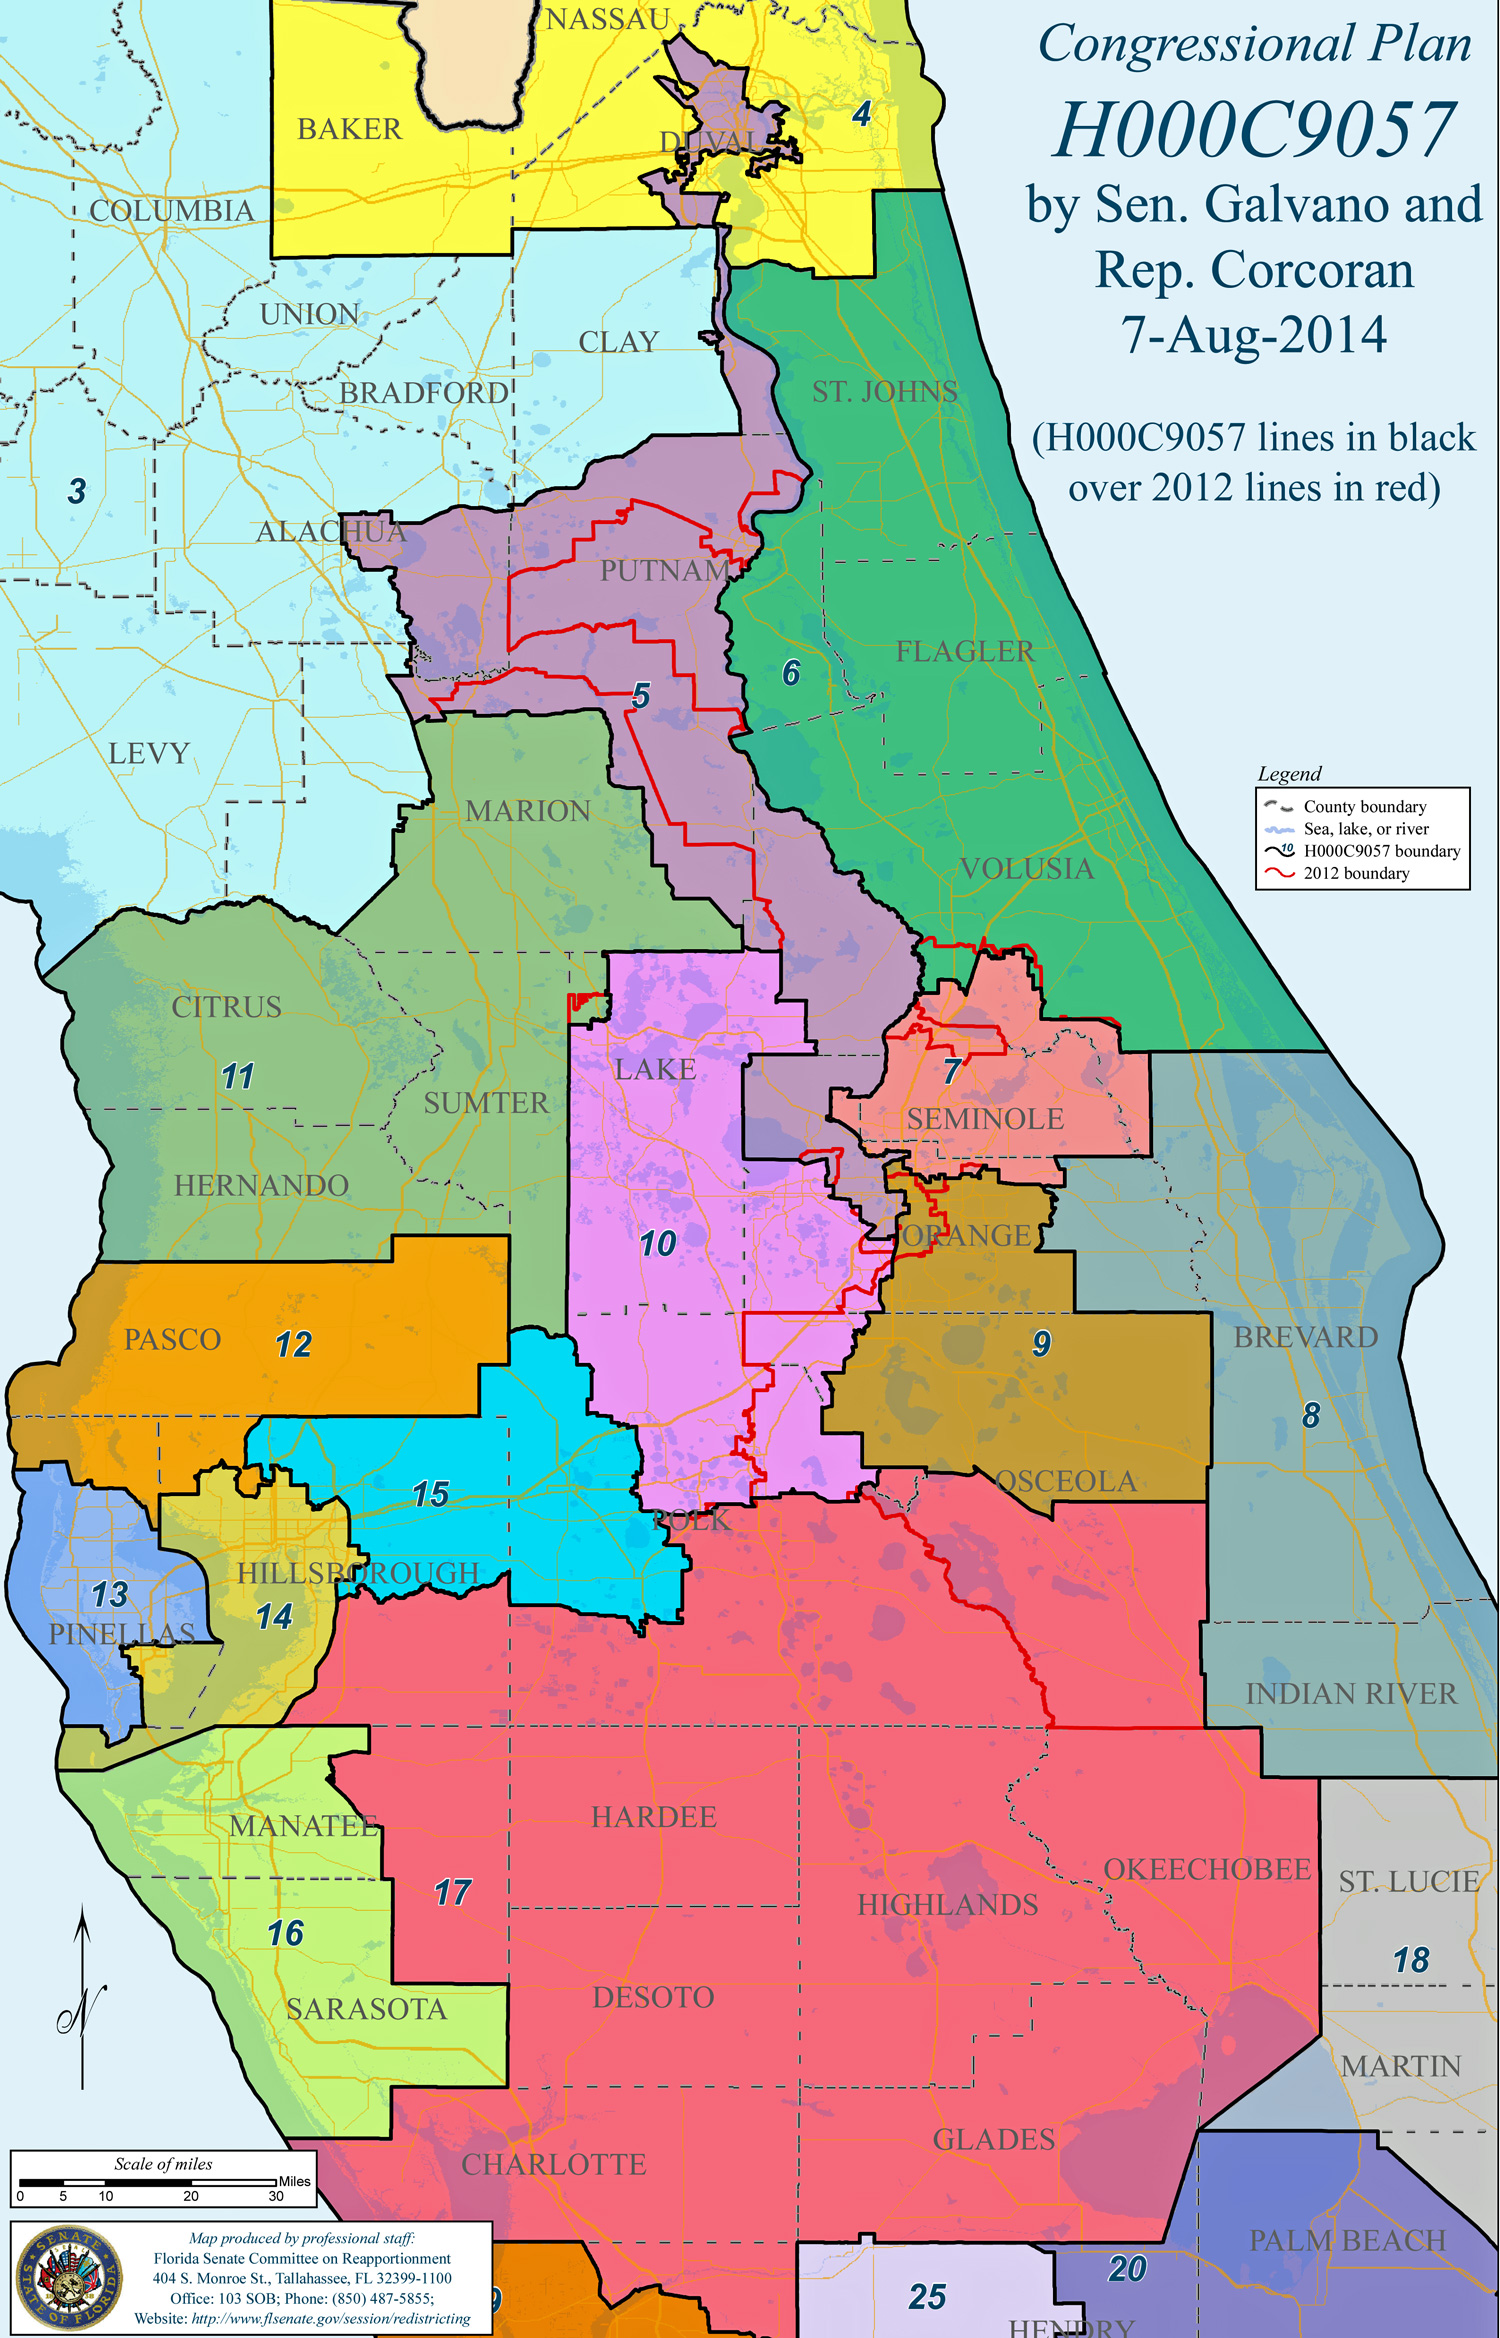 The New Congressional Districts In Northeast Florida Including District 6 Which Includes All Of